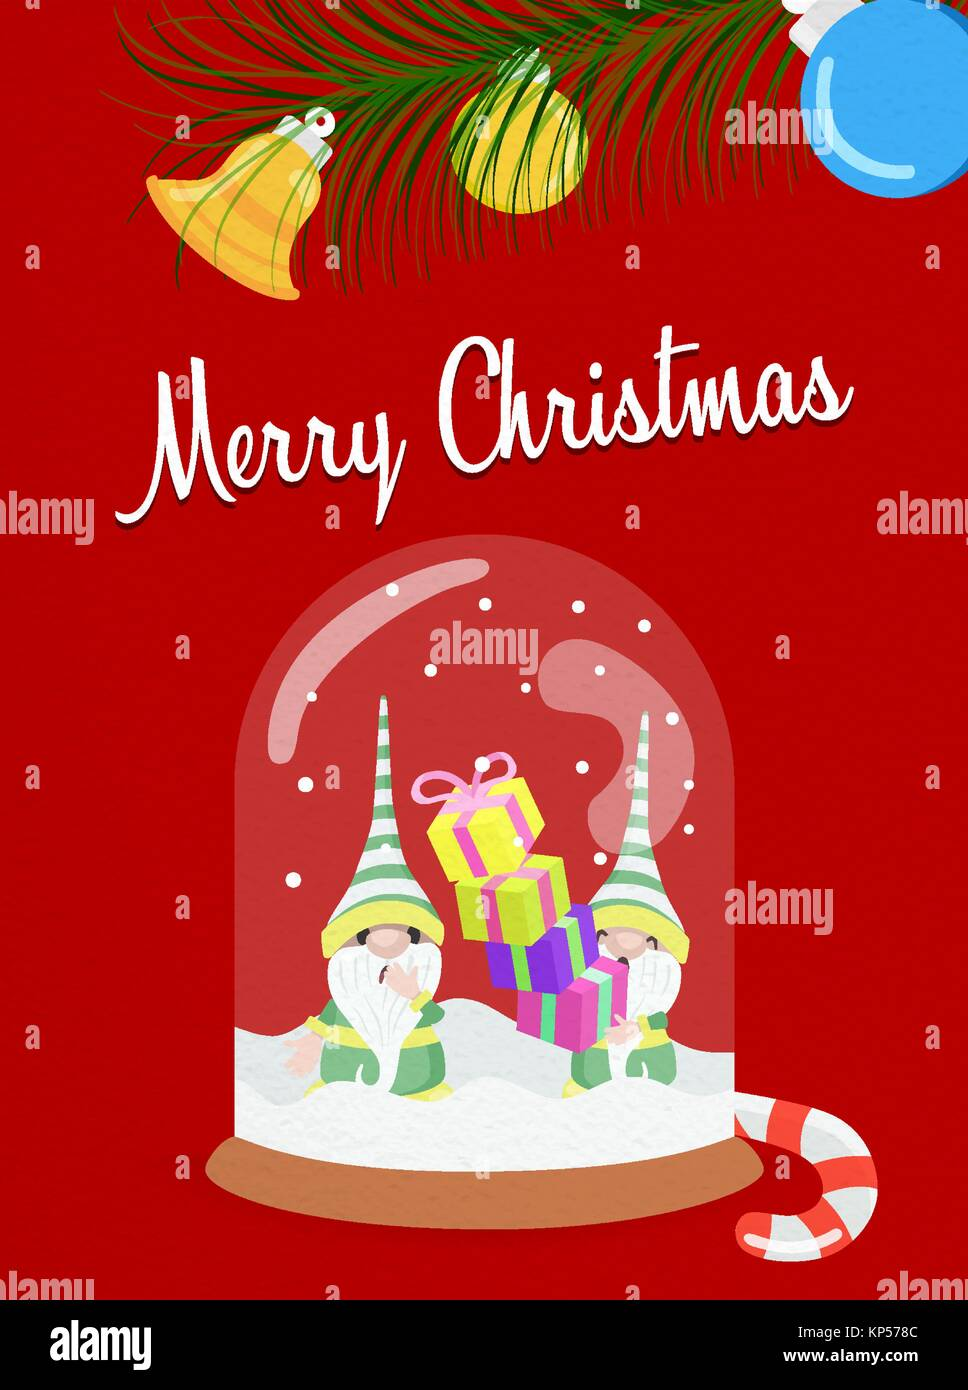 Merry Christmas Greeting Card Snow Globe Illustration For Holiday